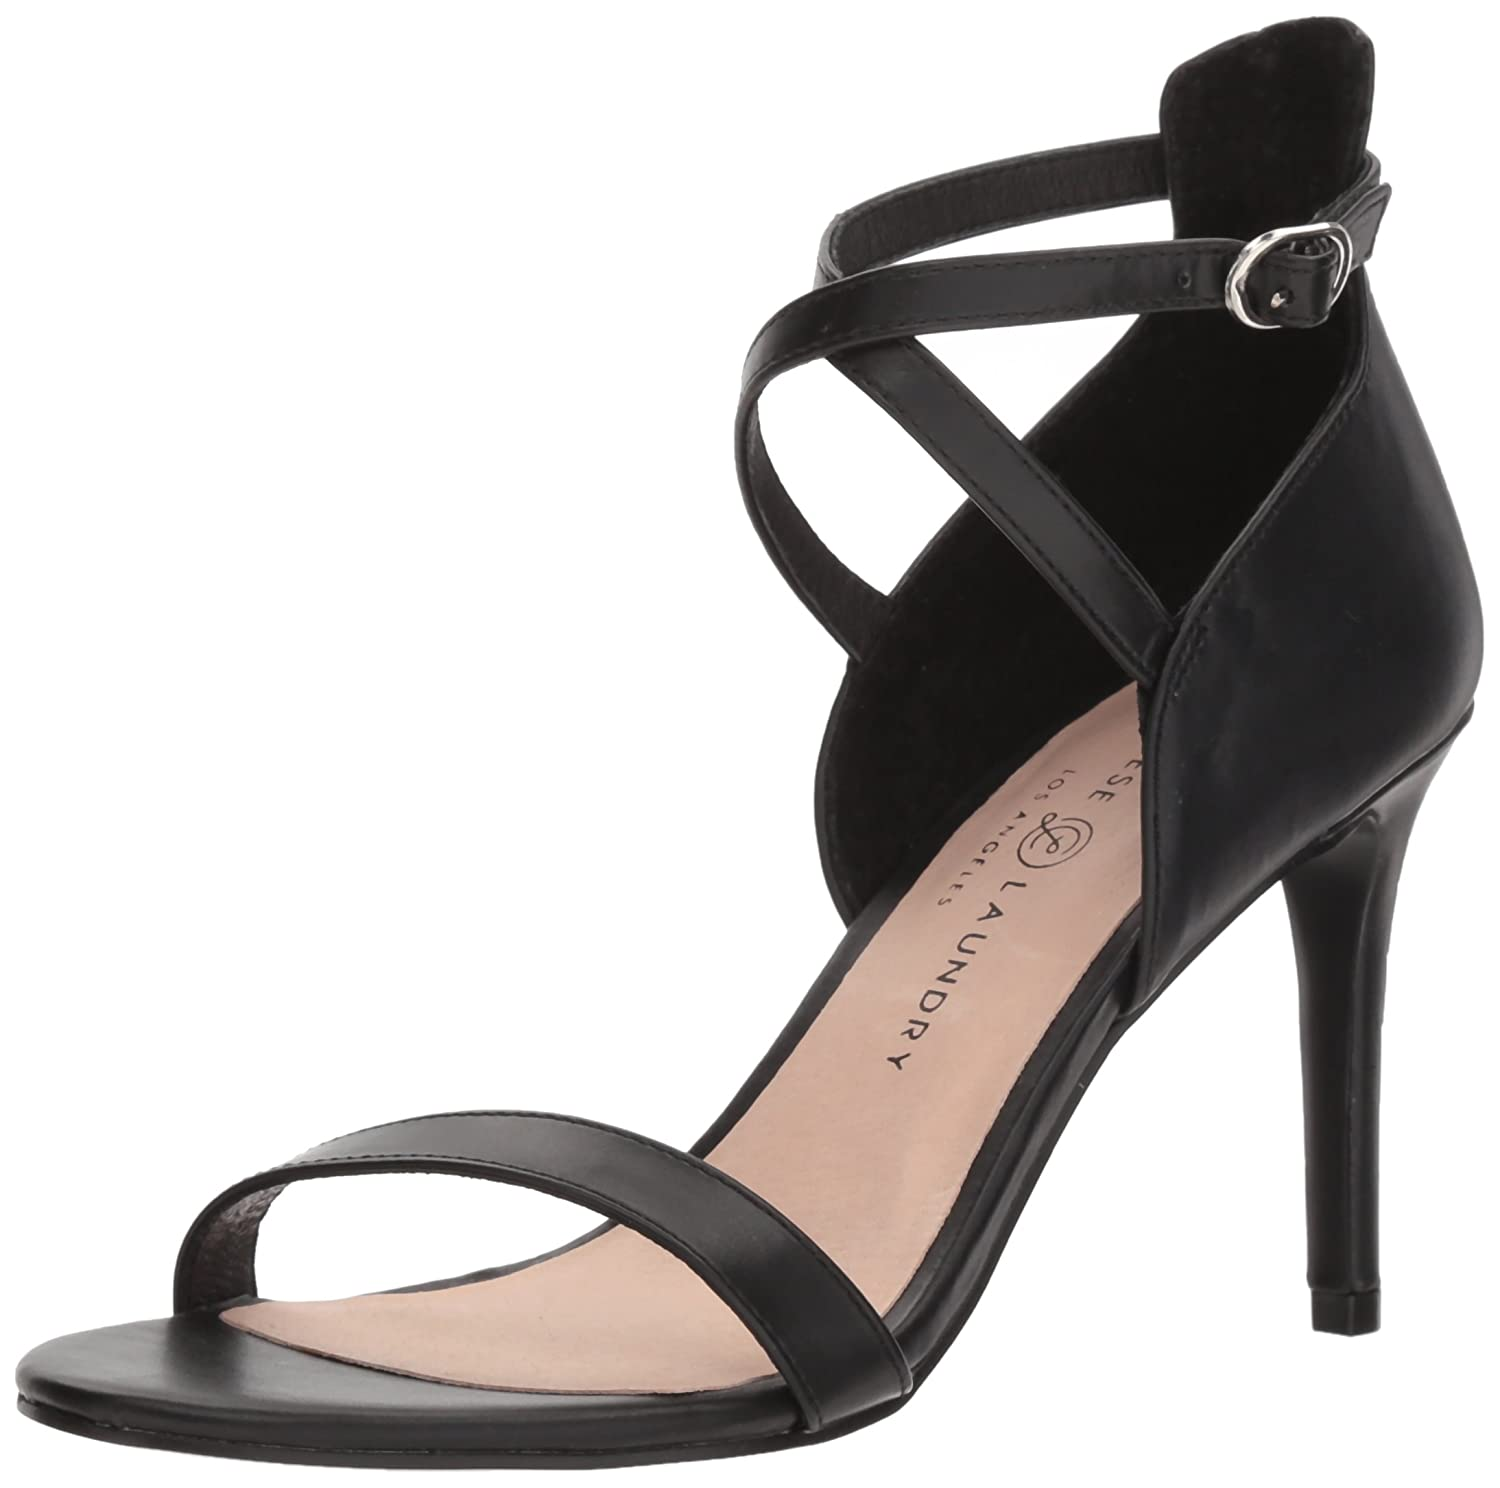 bce0afae883 Chinese Laundry Women s Sabrie Heeled Sandal  Buy Online at Low Prices in  India - Amazon.in